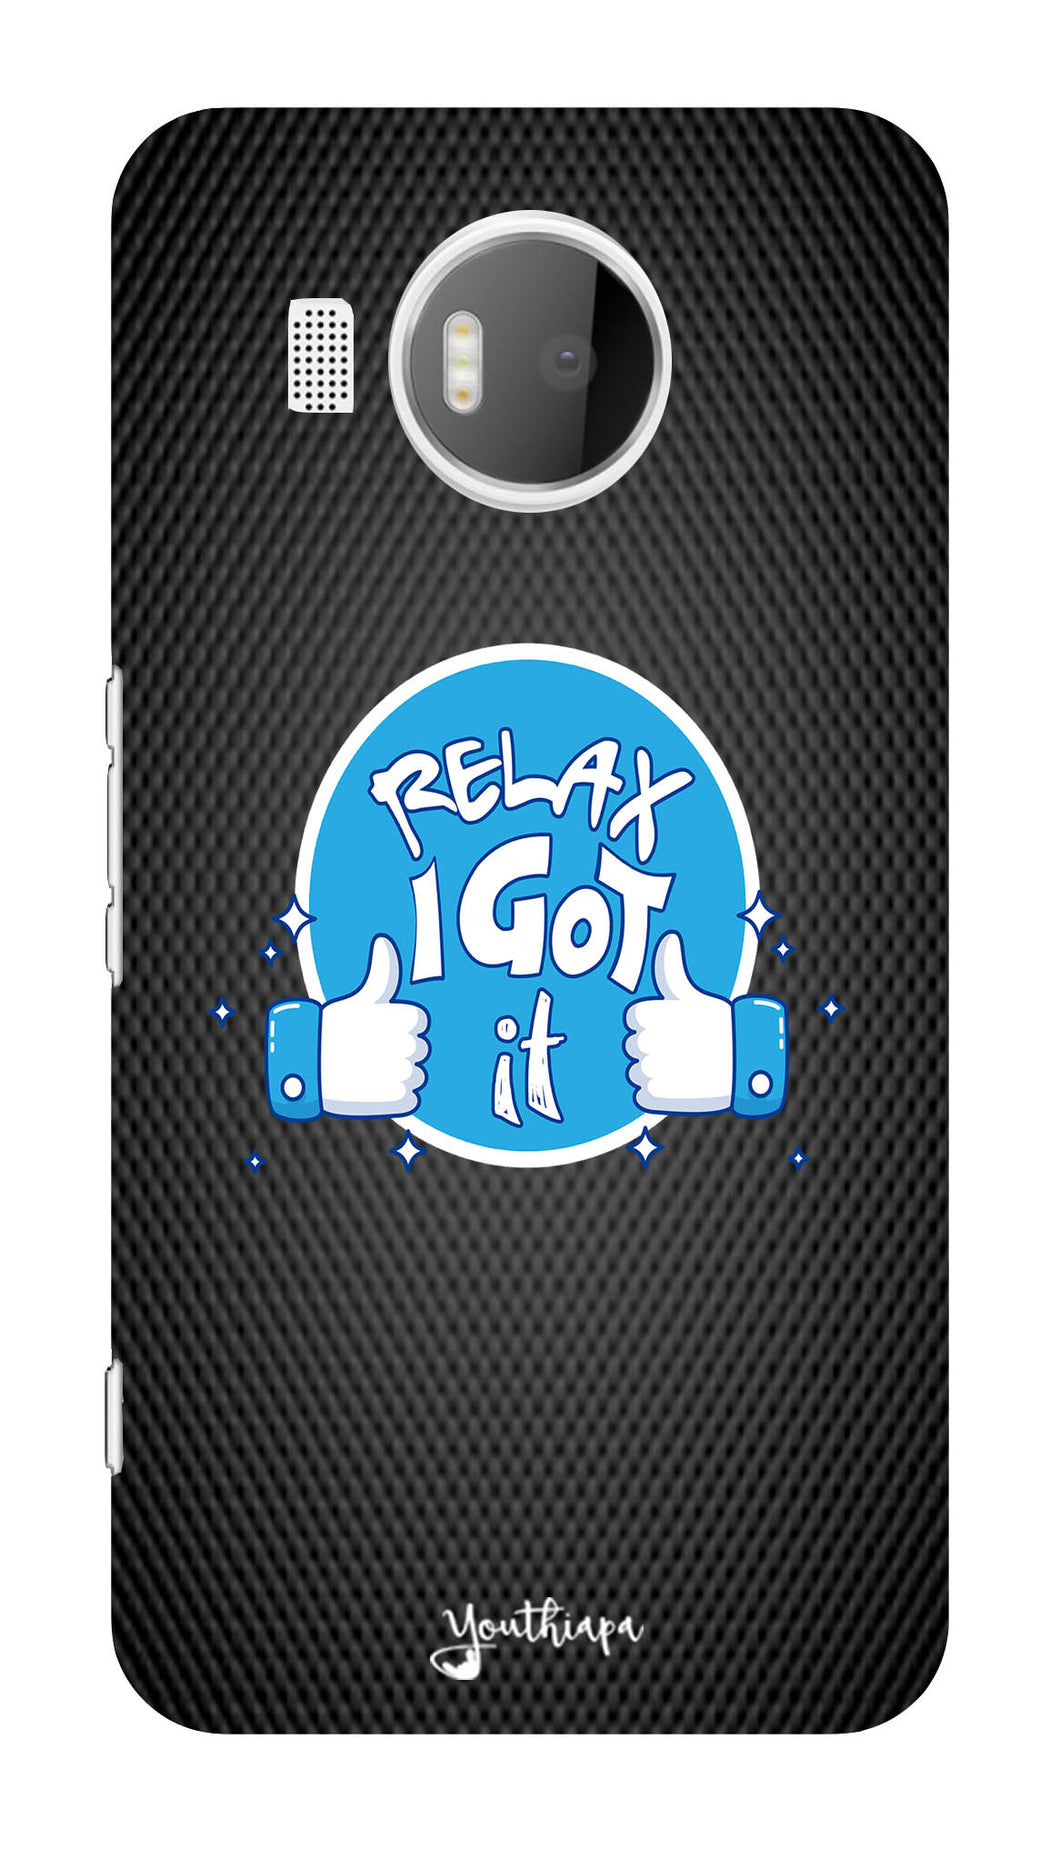 Relax Edition for Microsoft Lumia 950 XL